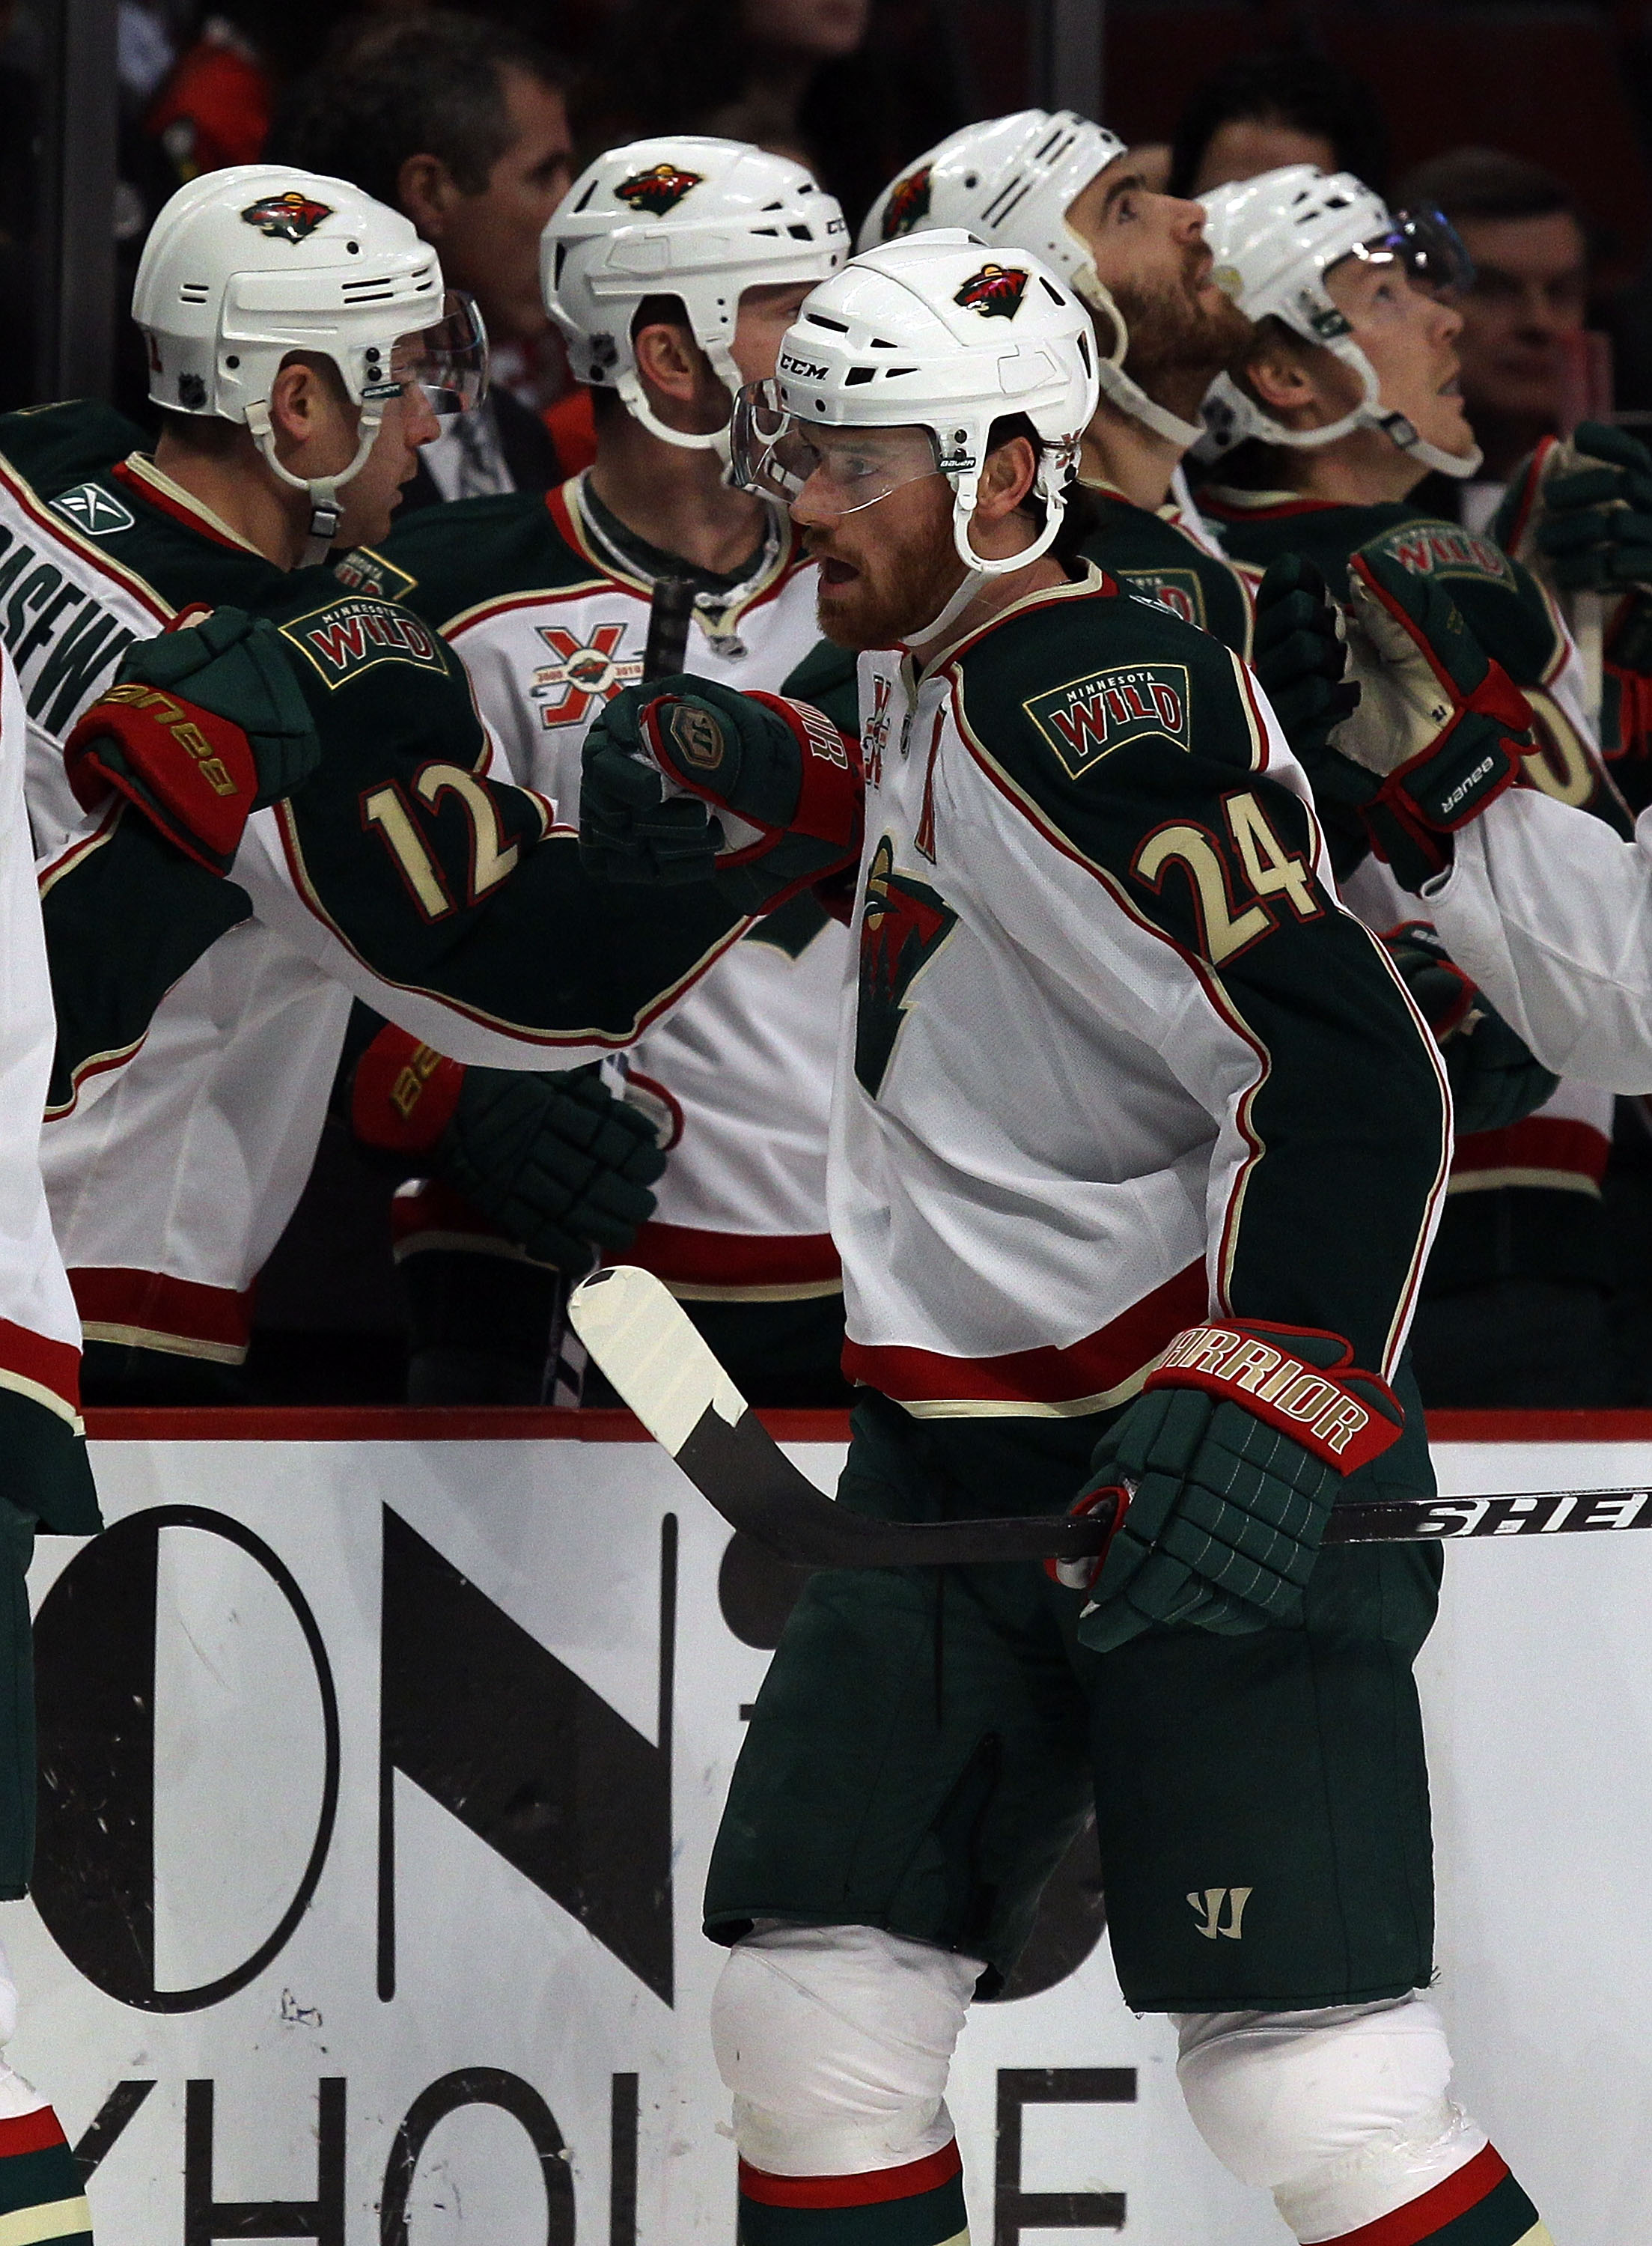 CHICAGO, IL - JANUARY 25: Martin Havlat #24 of the Minnesota Wild is congratulated by teammates after scoring a 1st period goal against the Chicago Blackhawks at the United Center on January 25, 2011 in Chicago, Illinois. The Wild defeated the Blackhawks